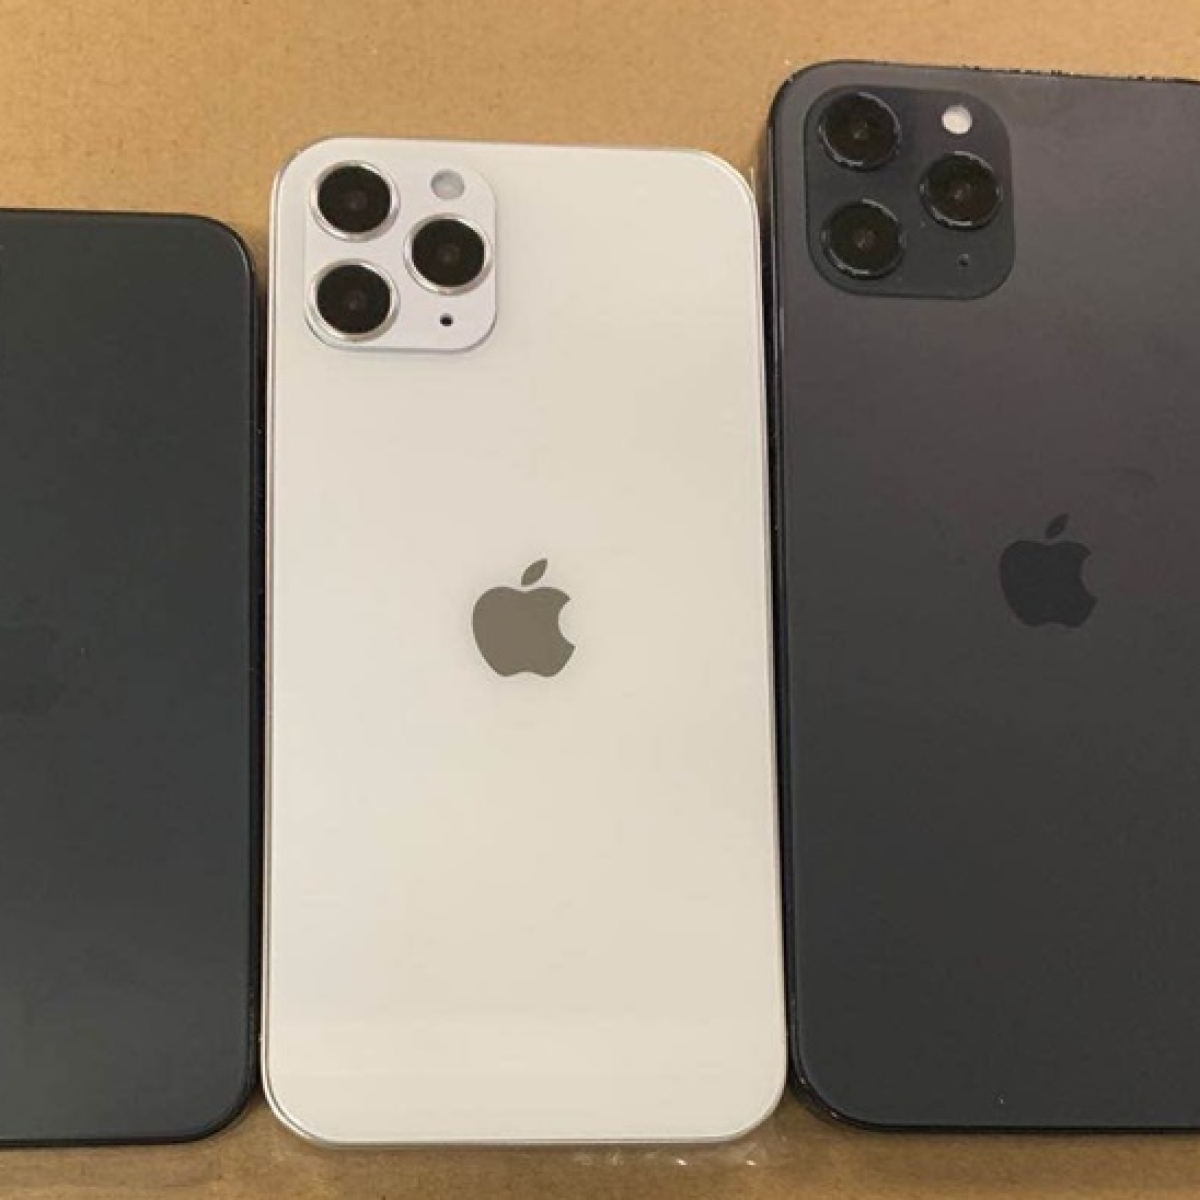 Apple's iPhone 12 images leaked, dummy units hint at three screen sizes